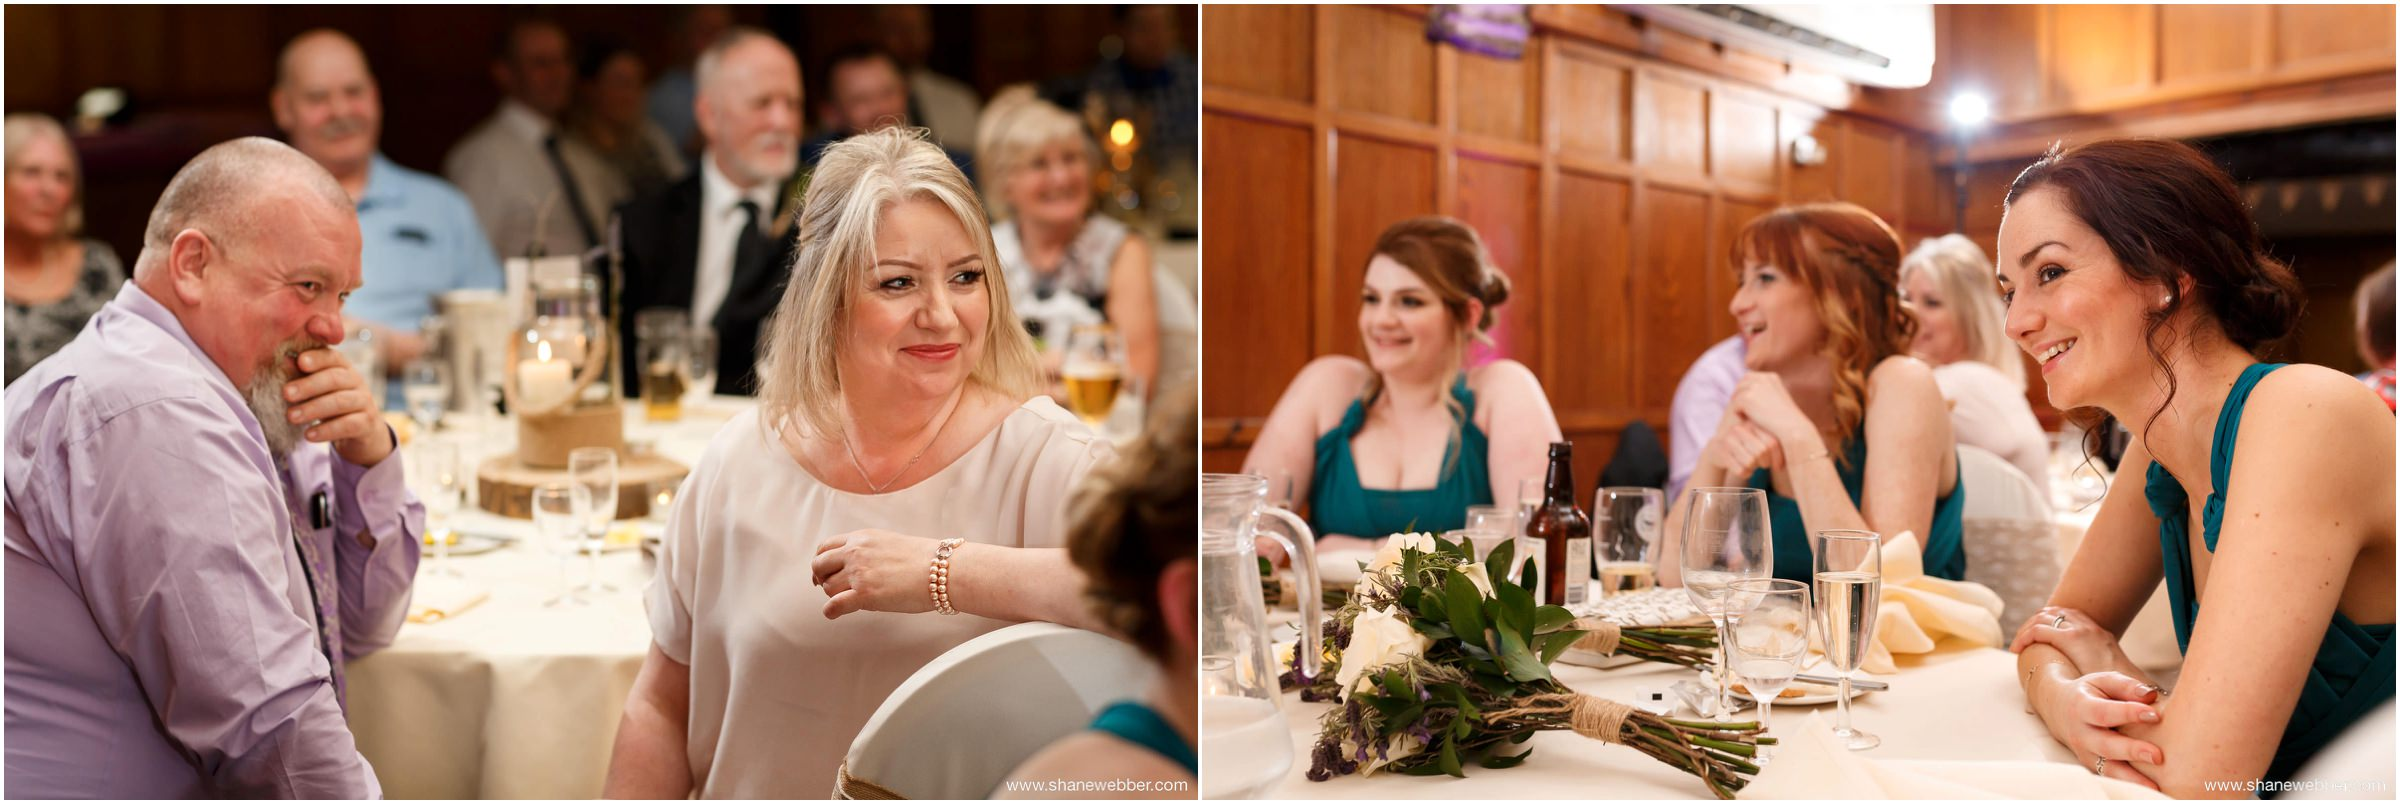 Contemporary wedding pictures